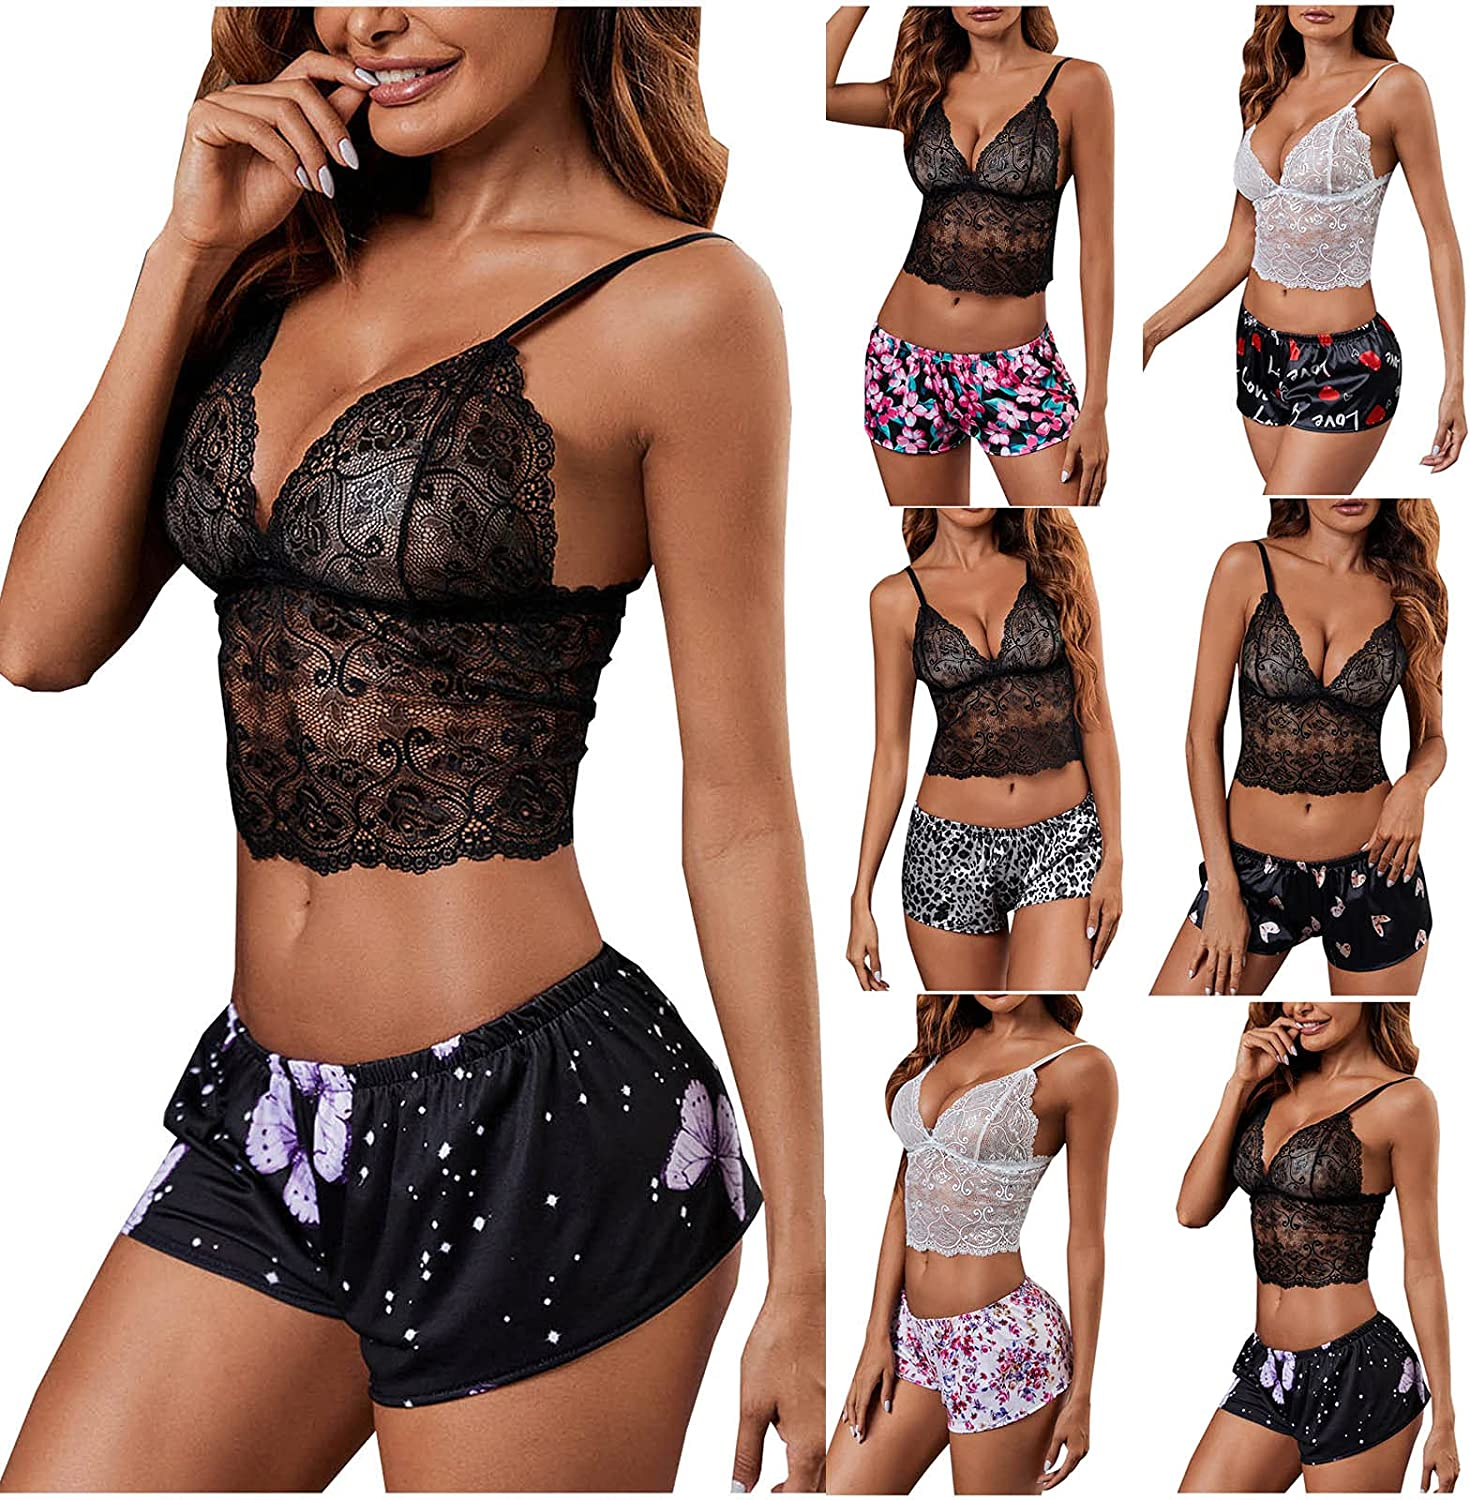 Women Sexy Lingerie Max 75% OFF Set Wireless Two Se store Panty Piece and Bra Lace